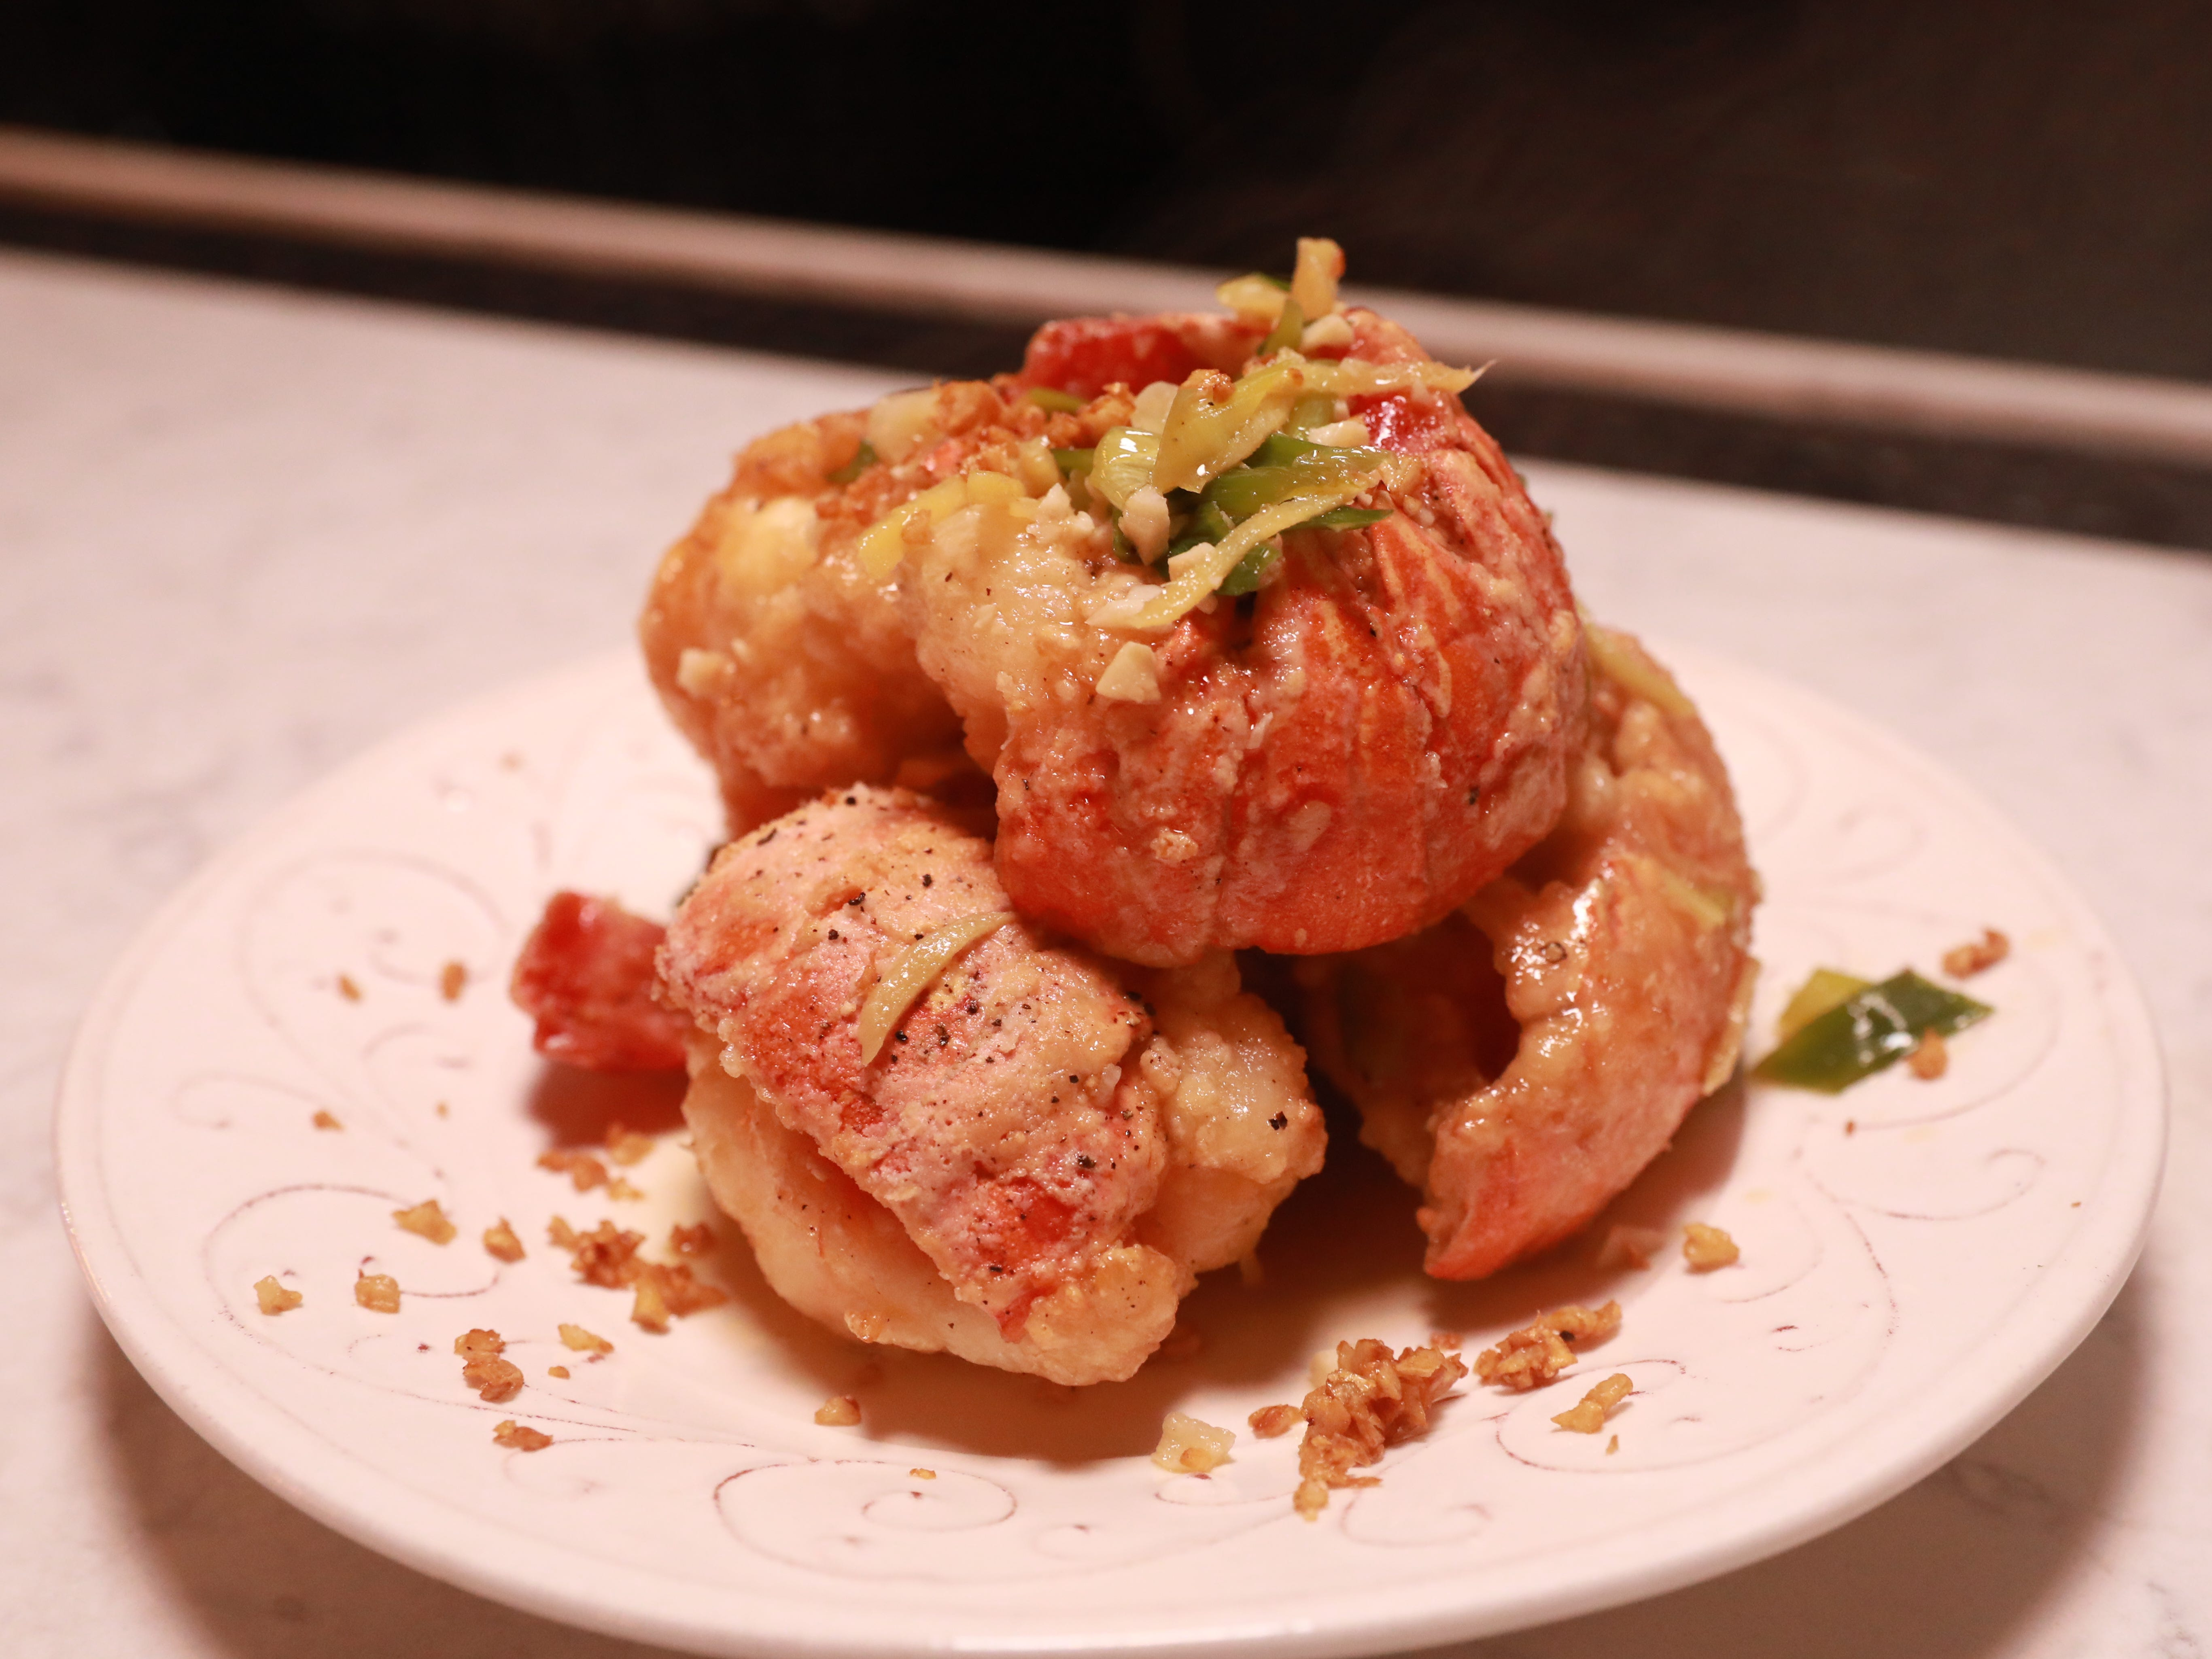 CARUCHA L. MEUSE: A giant piece of lobster tail in a ginger scallion sauce with garlic chips is a dish served during Dinner with Jeanne at new not yet open Maria Restaurant in New Rochelle Sept.14, 2018.